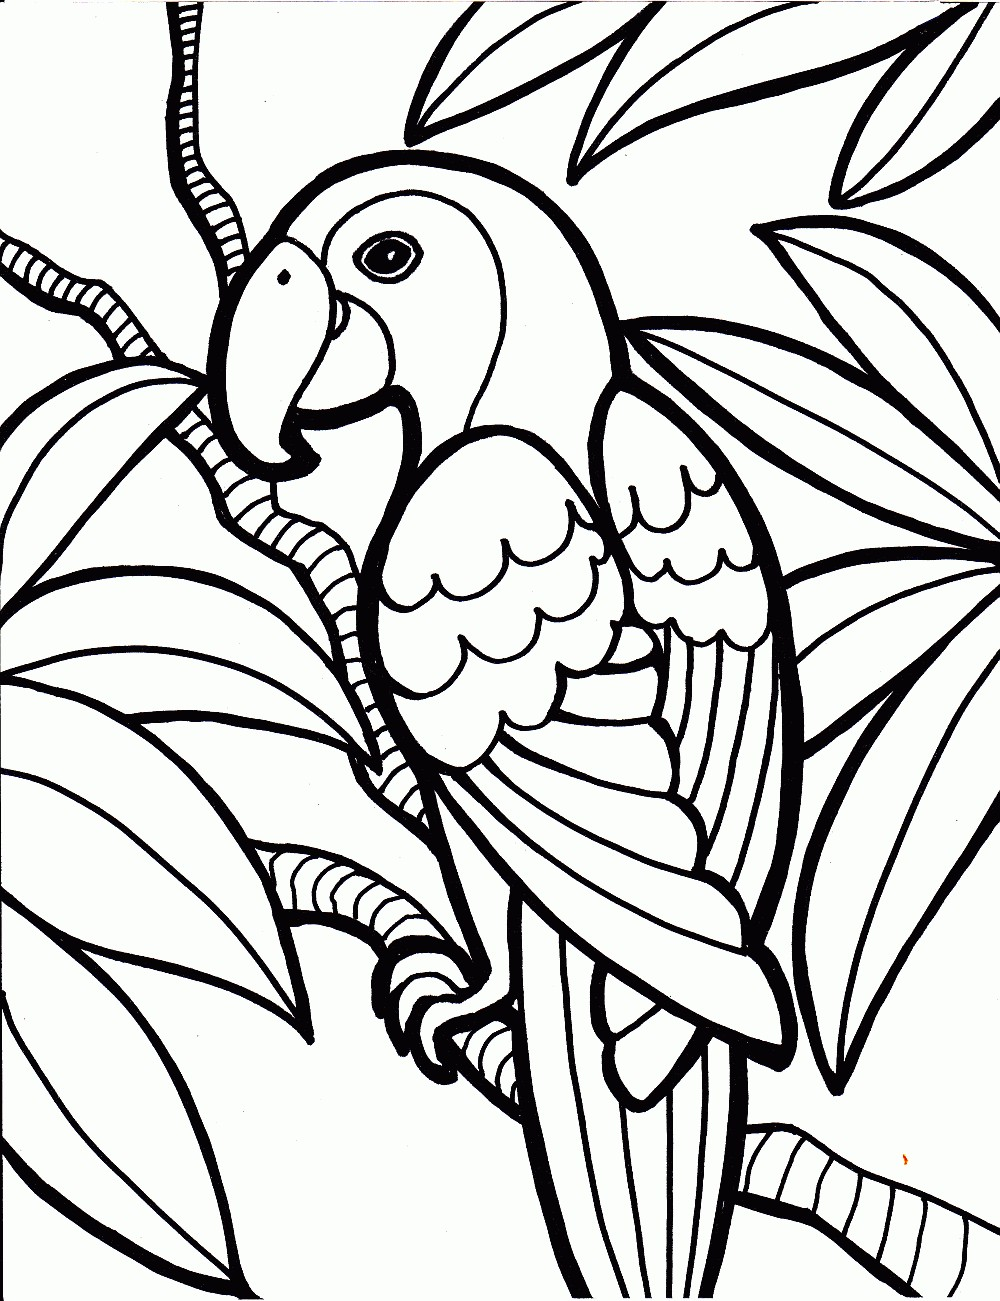 Free printable parrot coloring pages for kids for Free printable coloring pages for adults and kids